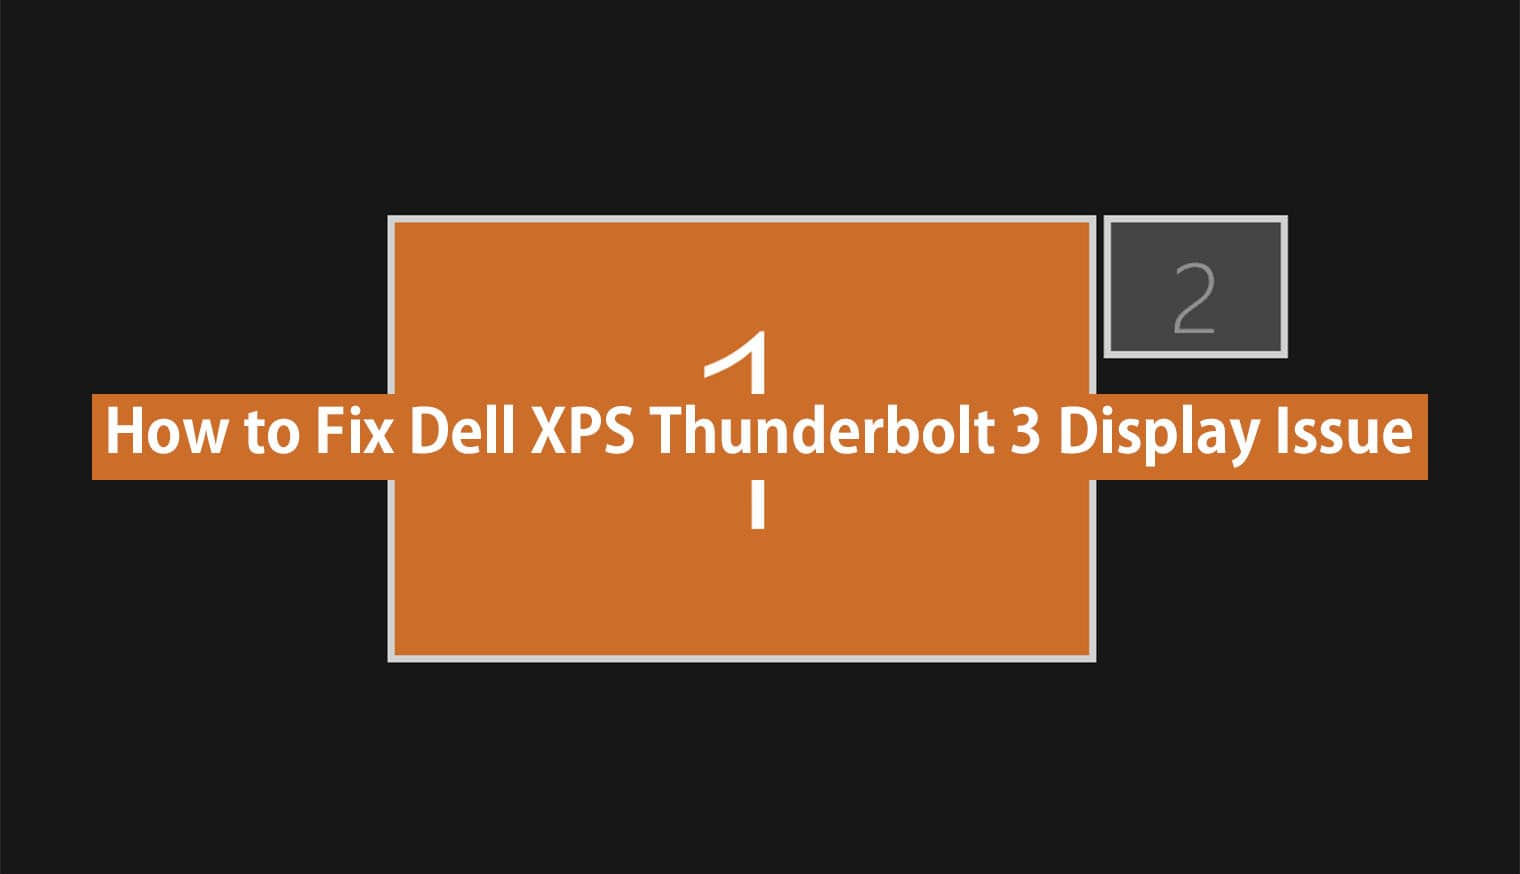 fix dell xps thunderbolt 3 display issue